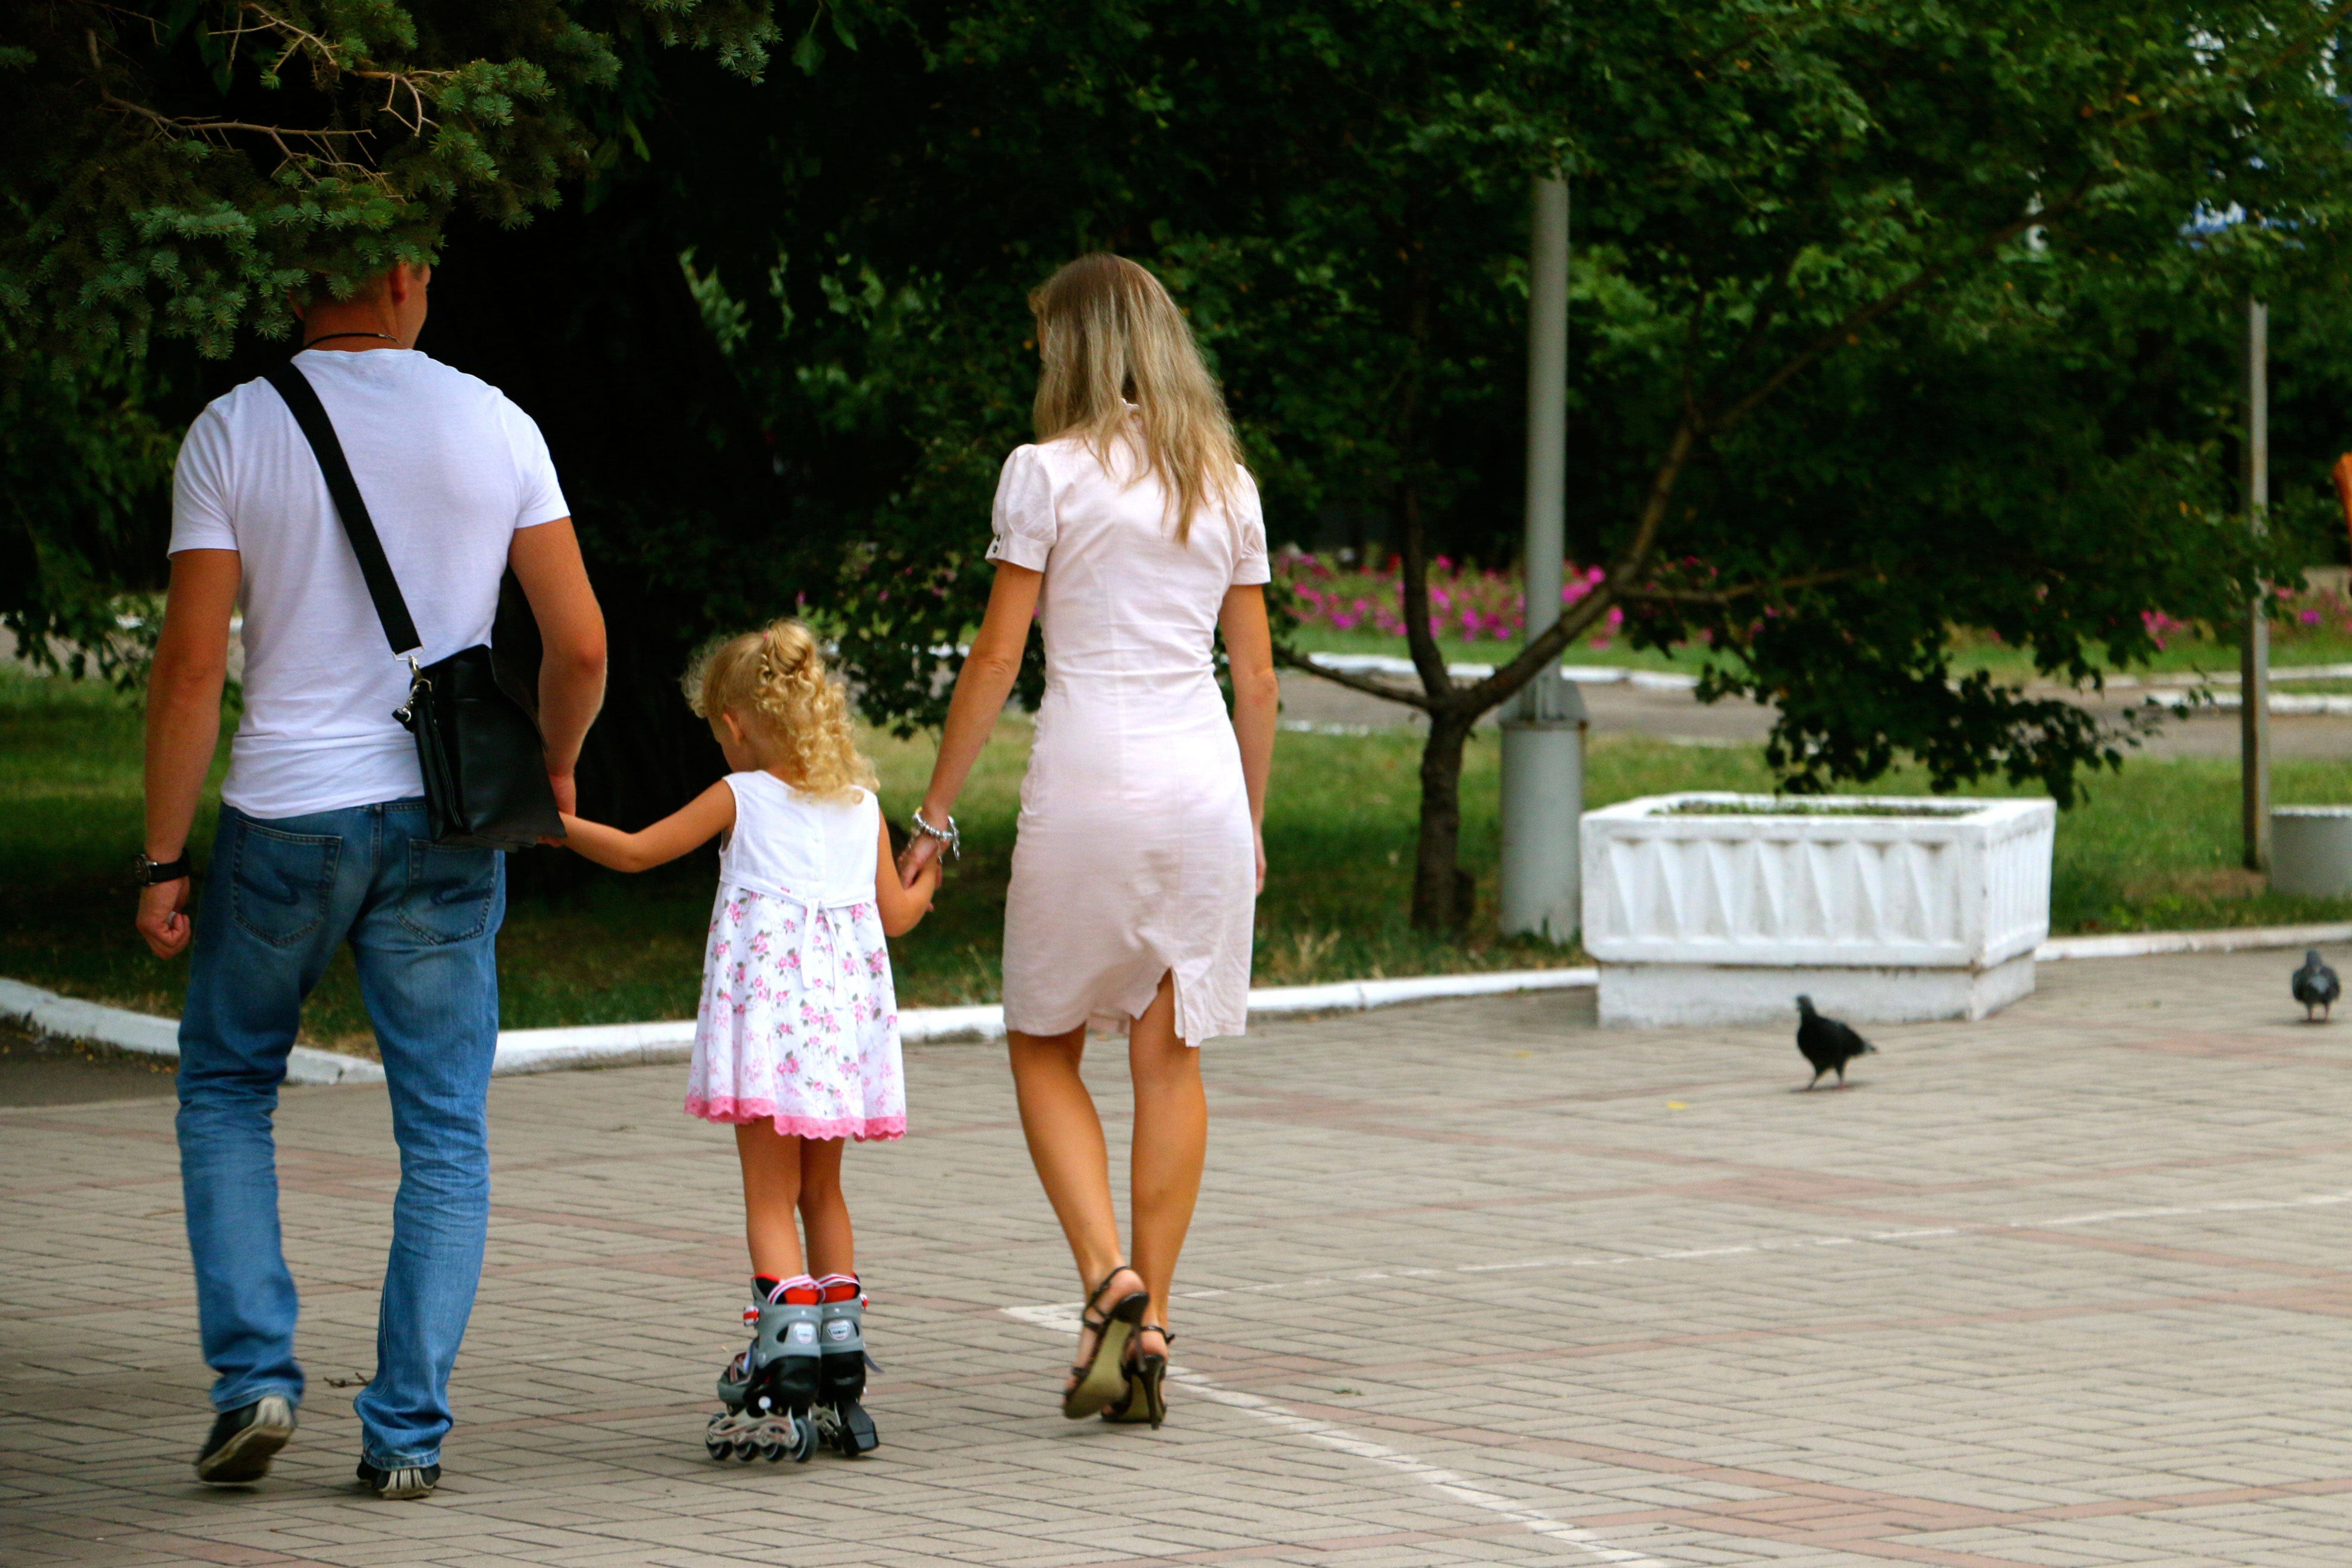 Many Ukrainians have made a conscious choice to have fewer children, or to delay parenthood, due to political and economic instability, as well as the ongoing military conflict in the Donbas.